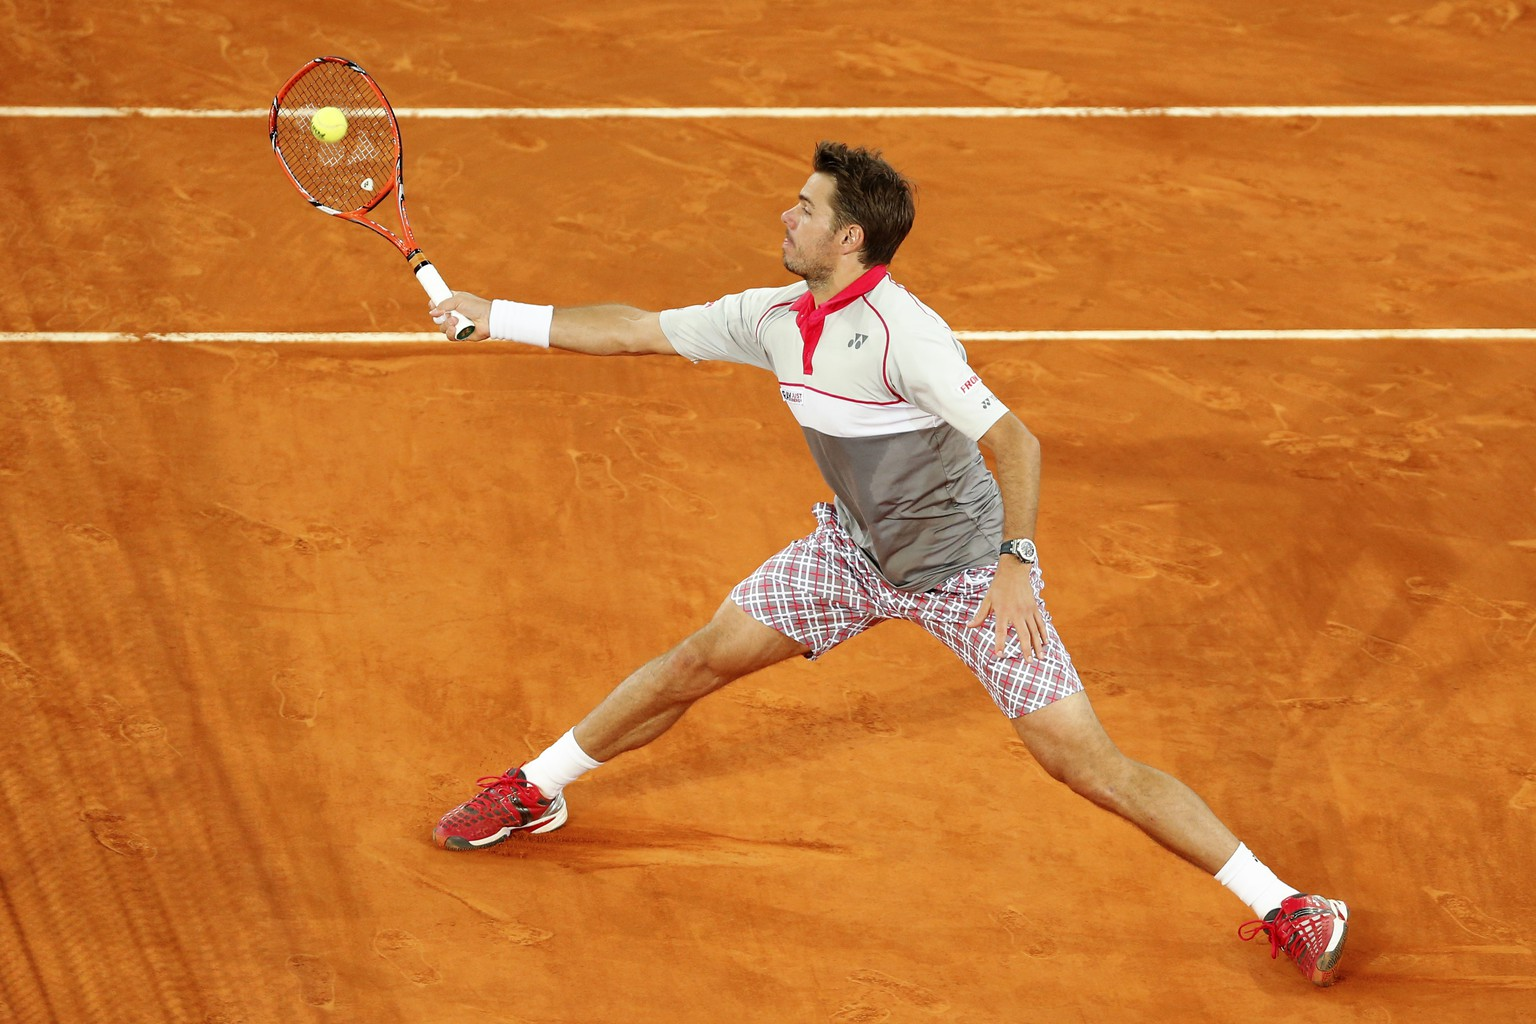 Stanislas Wawrinka from Switzerland returns the ball during the Madrid Open tennis tournament match against Joao Sousa from Portugal in Madrid, Spain, Tuesday, May 5, 2015. (AP Photo/Daniel Ochoa de Olza)